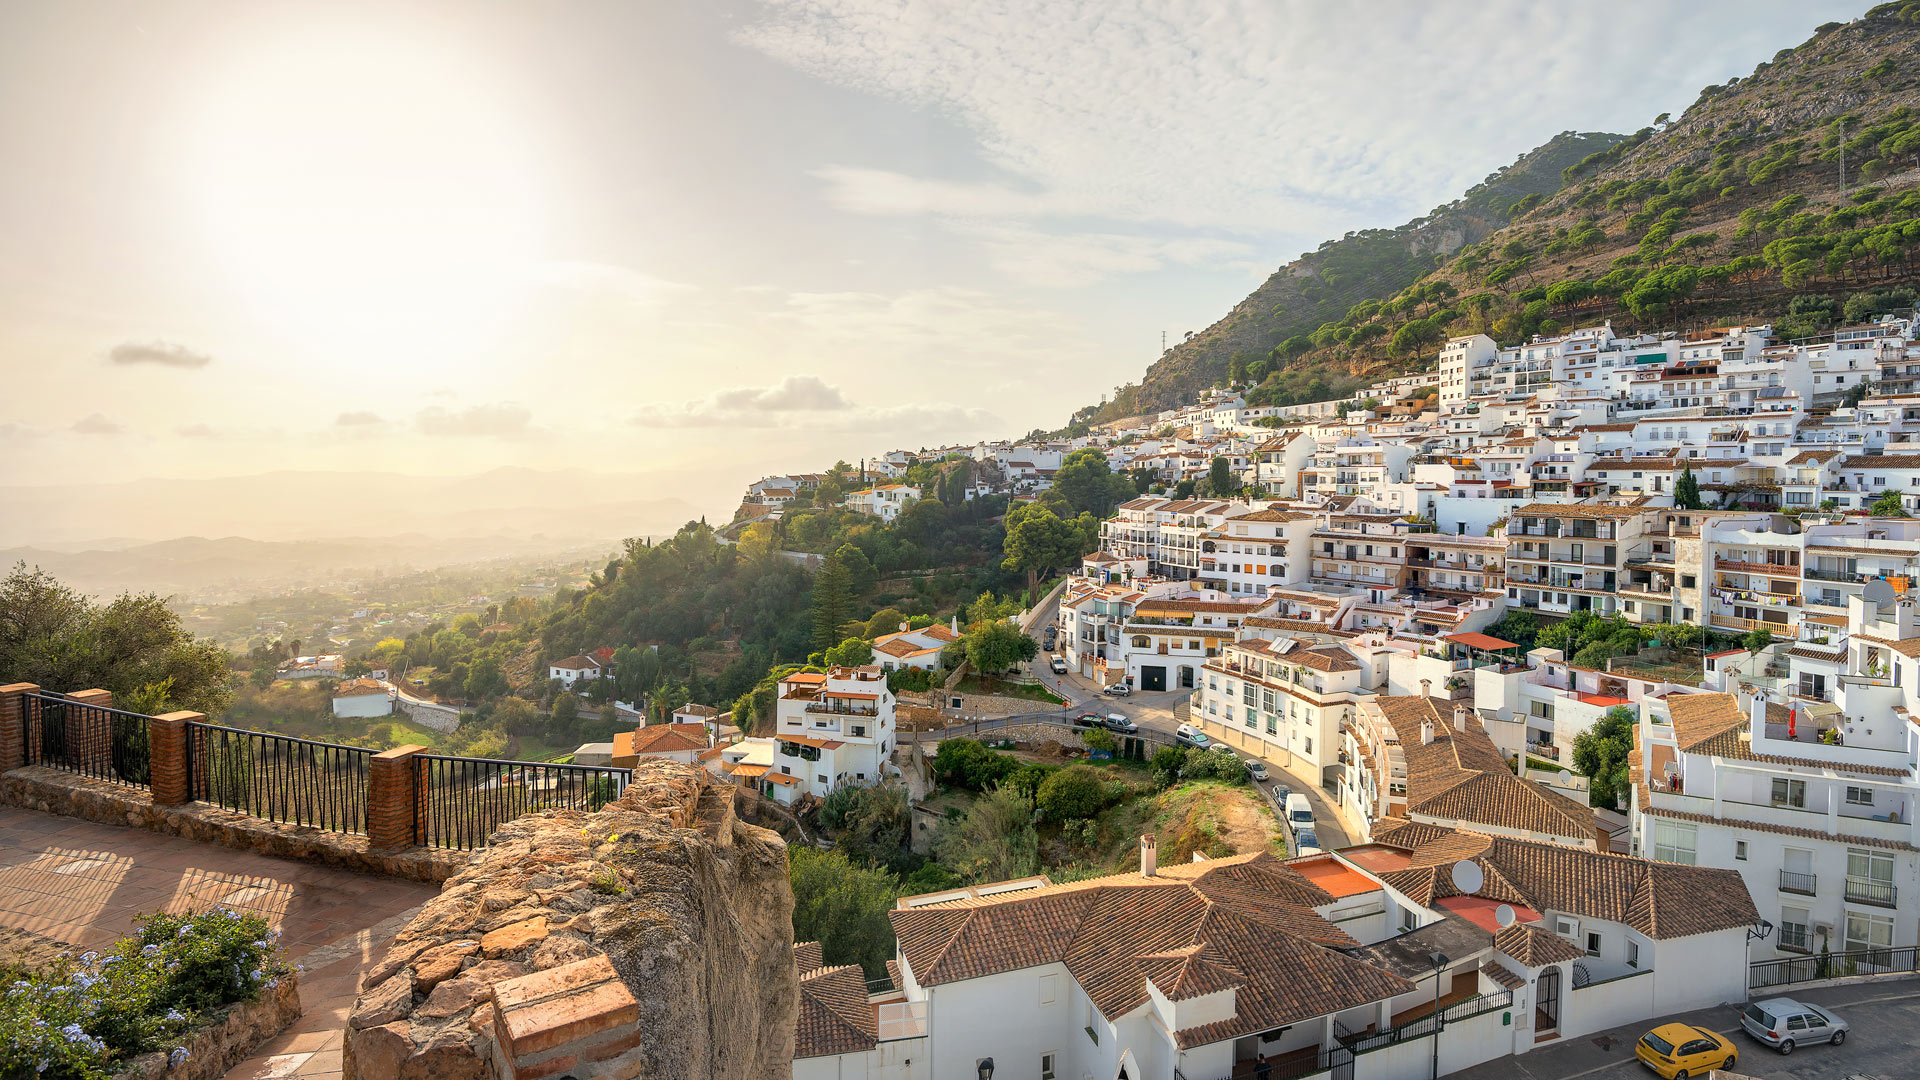 Mijas, Malaga province, the most beautiful places